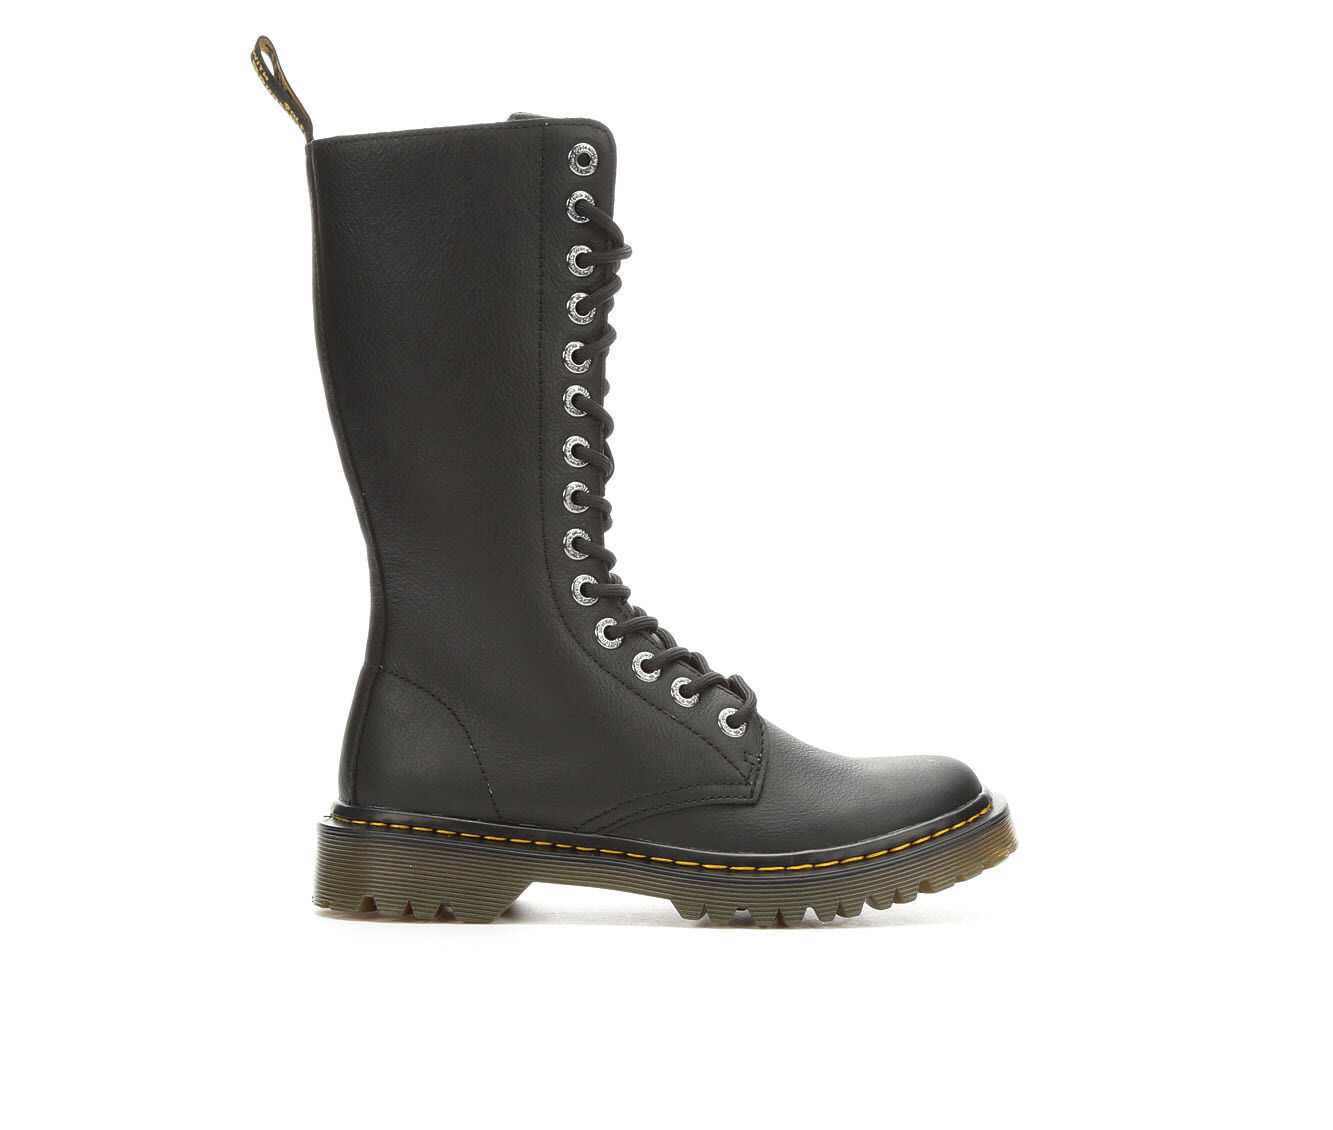 special price Women's Dr. Martens Luana Tall Combat Boots Black